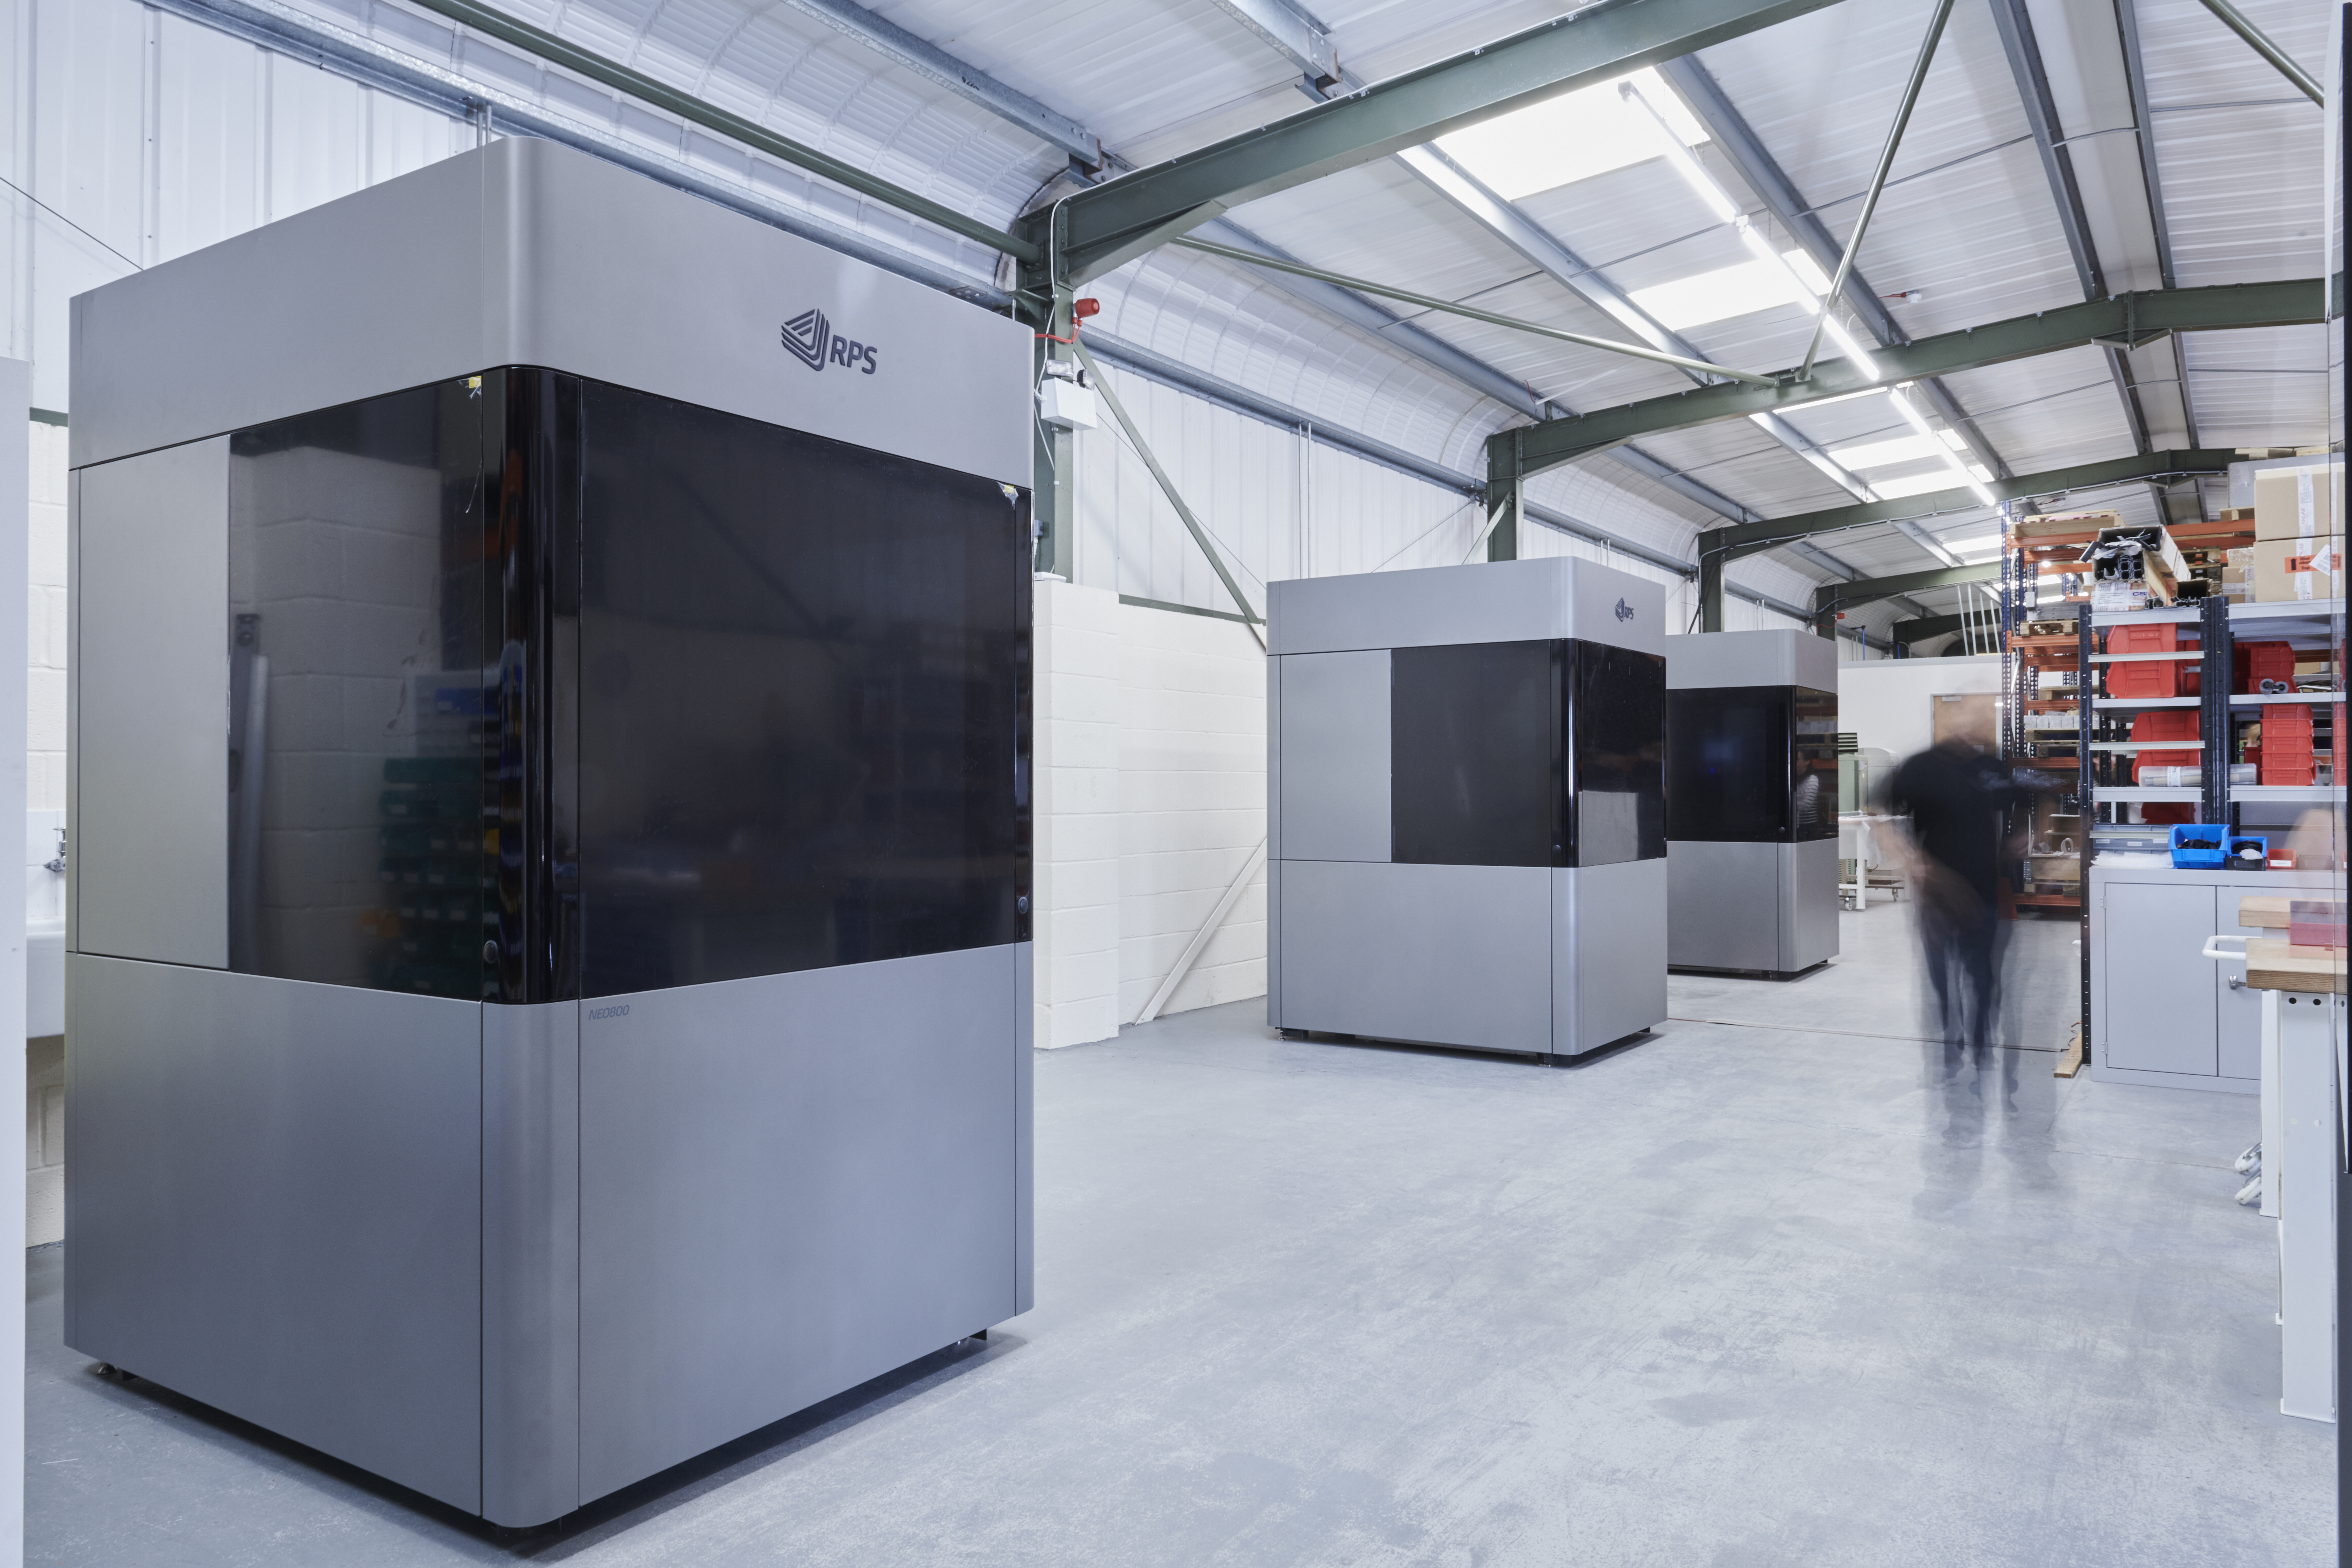 NEO800 large scale SL 3D printers at RPS in the UK. Photo via RPS